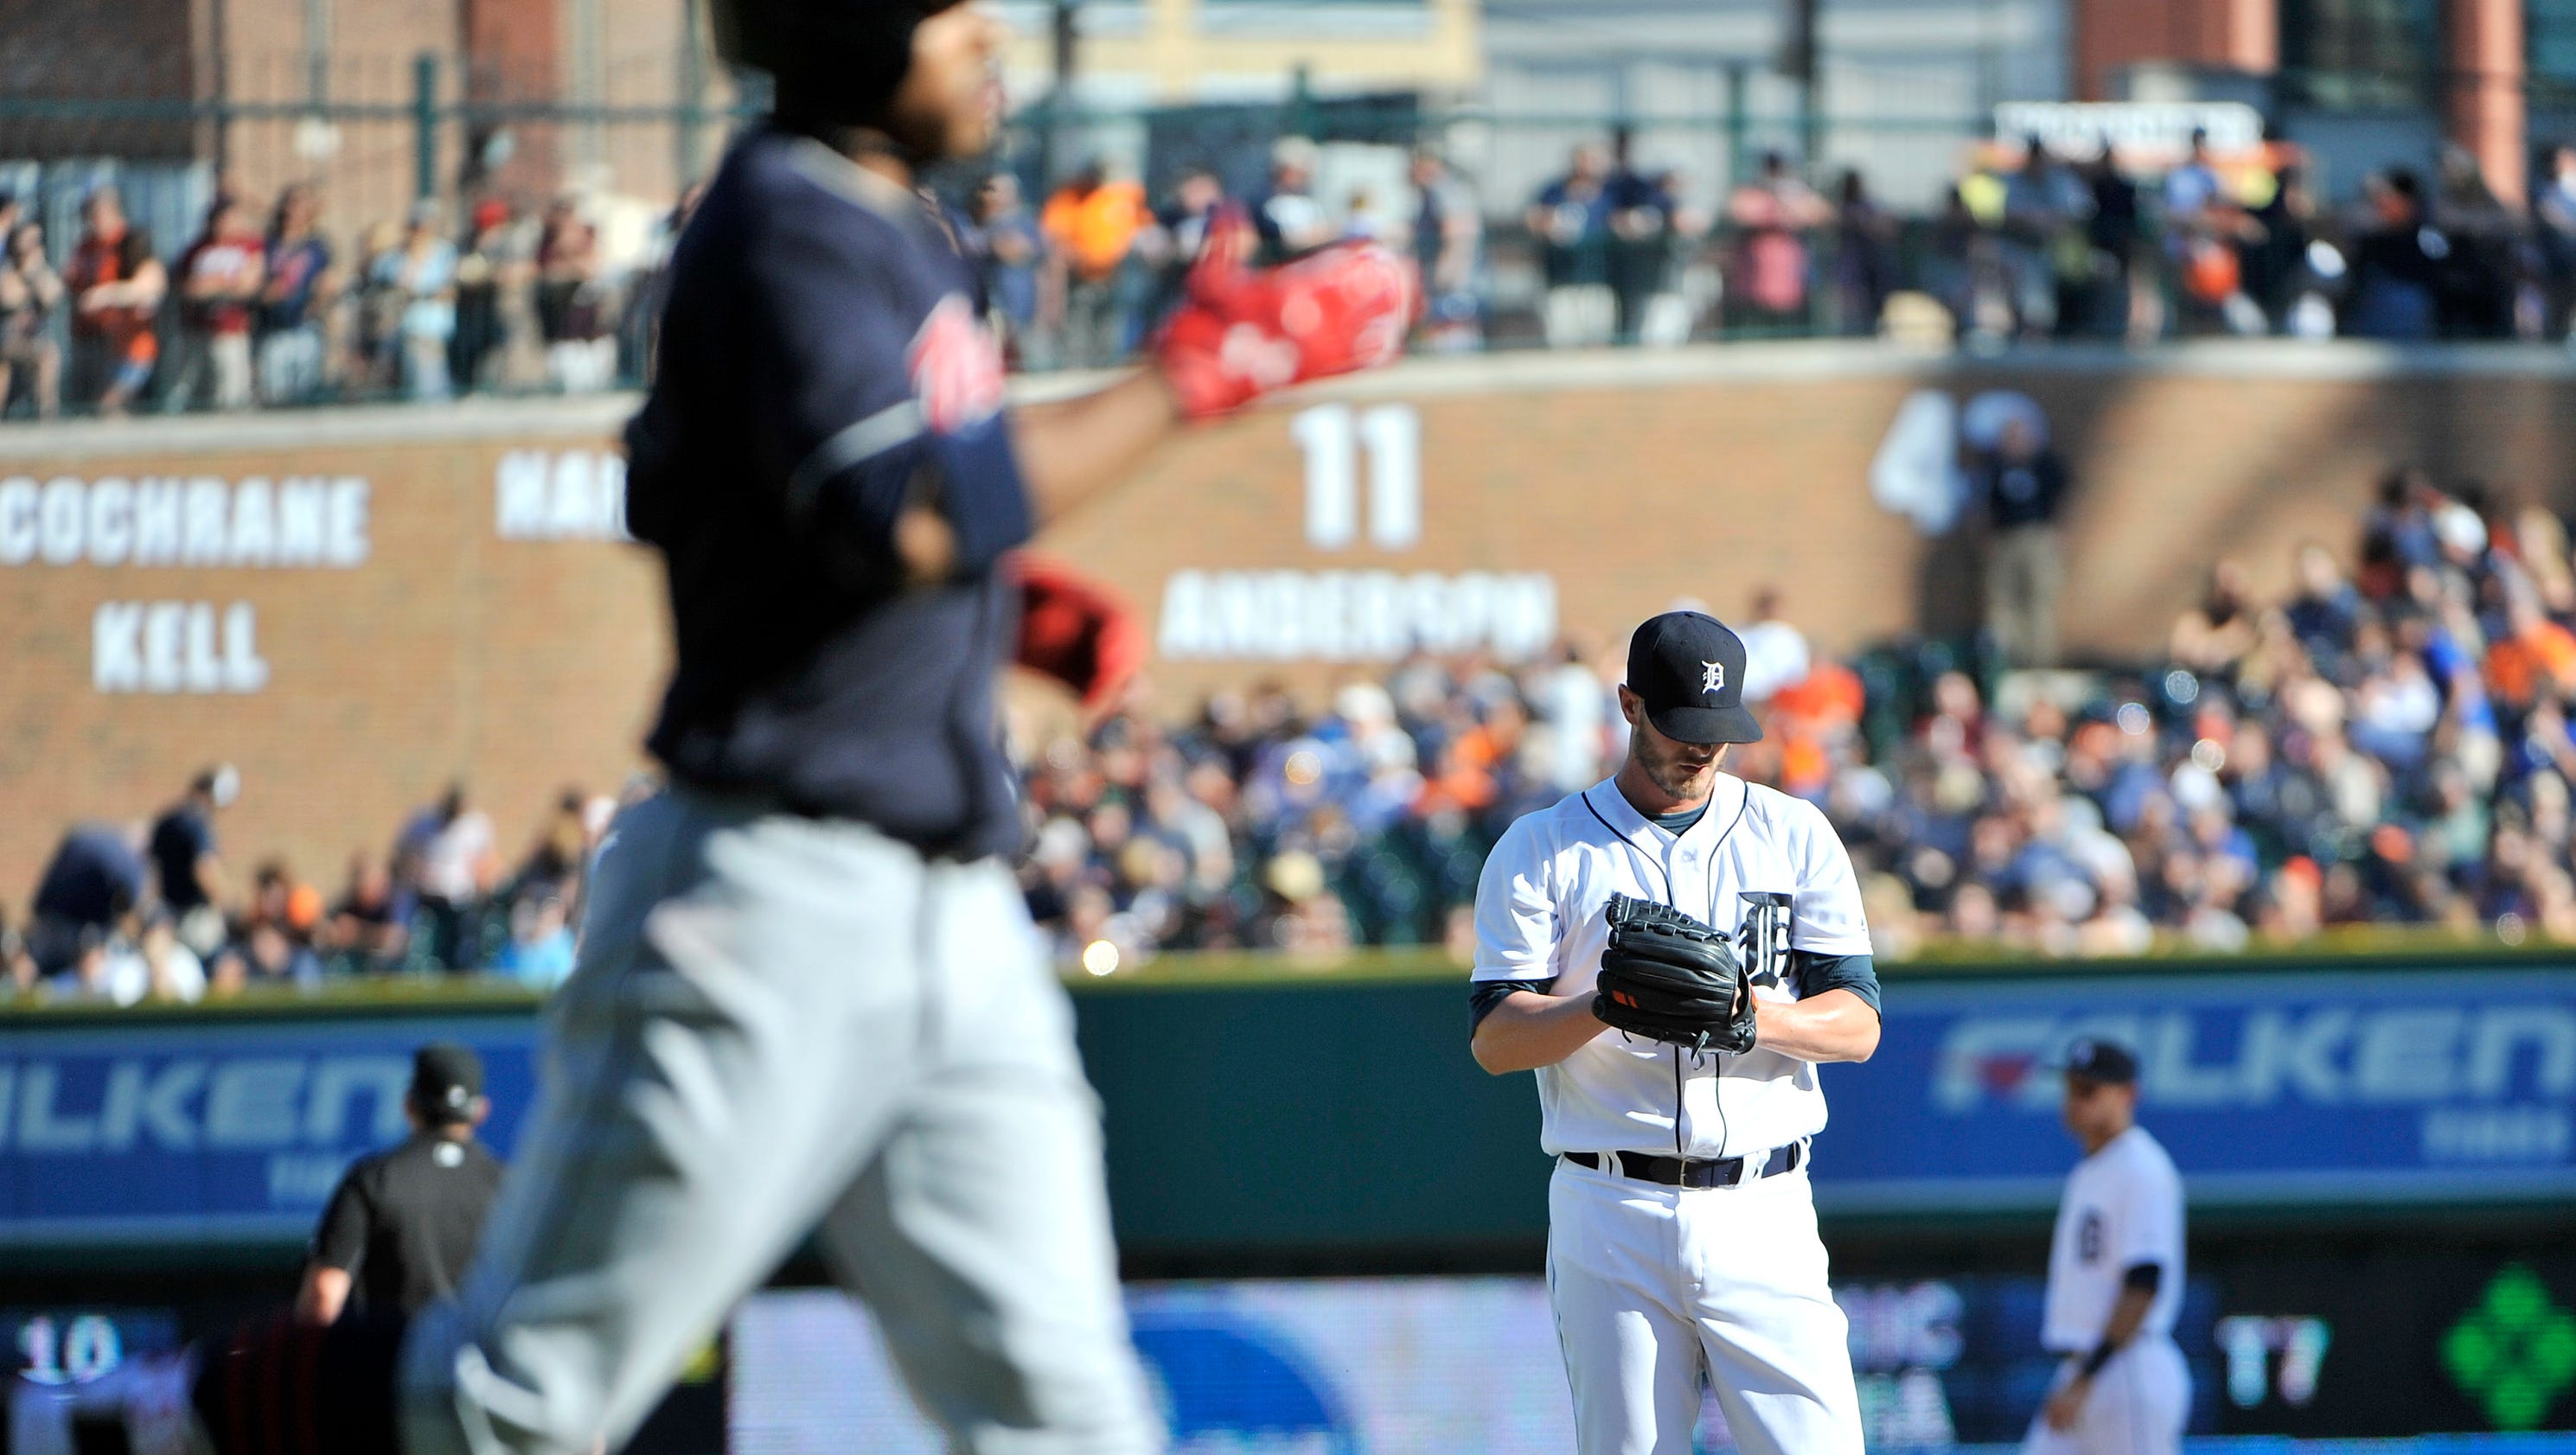 636024773183165243-2016-0625-rb-tigers-indians513